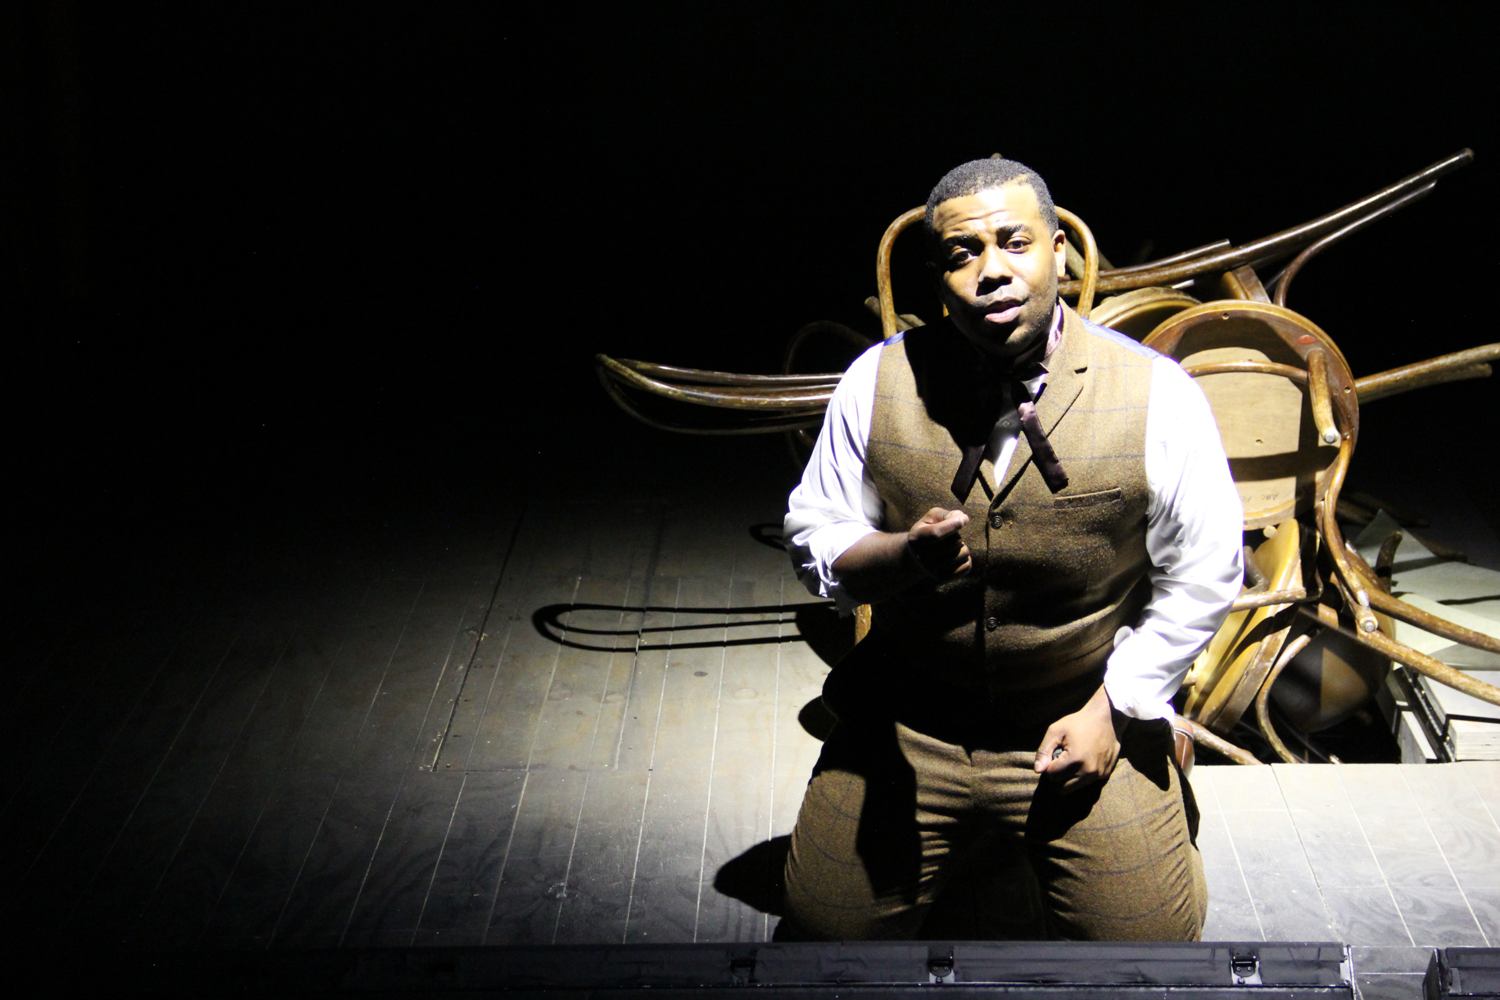 Sidney Outlaw as Frank Lloyd Wright in the Urban Arias production directed by Grant Preisser.